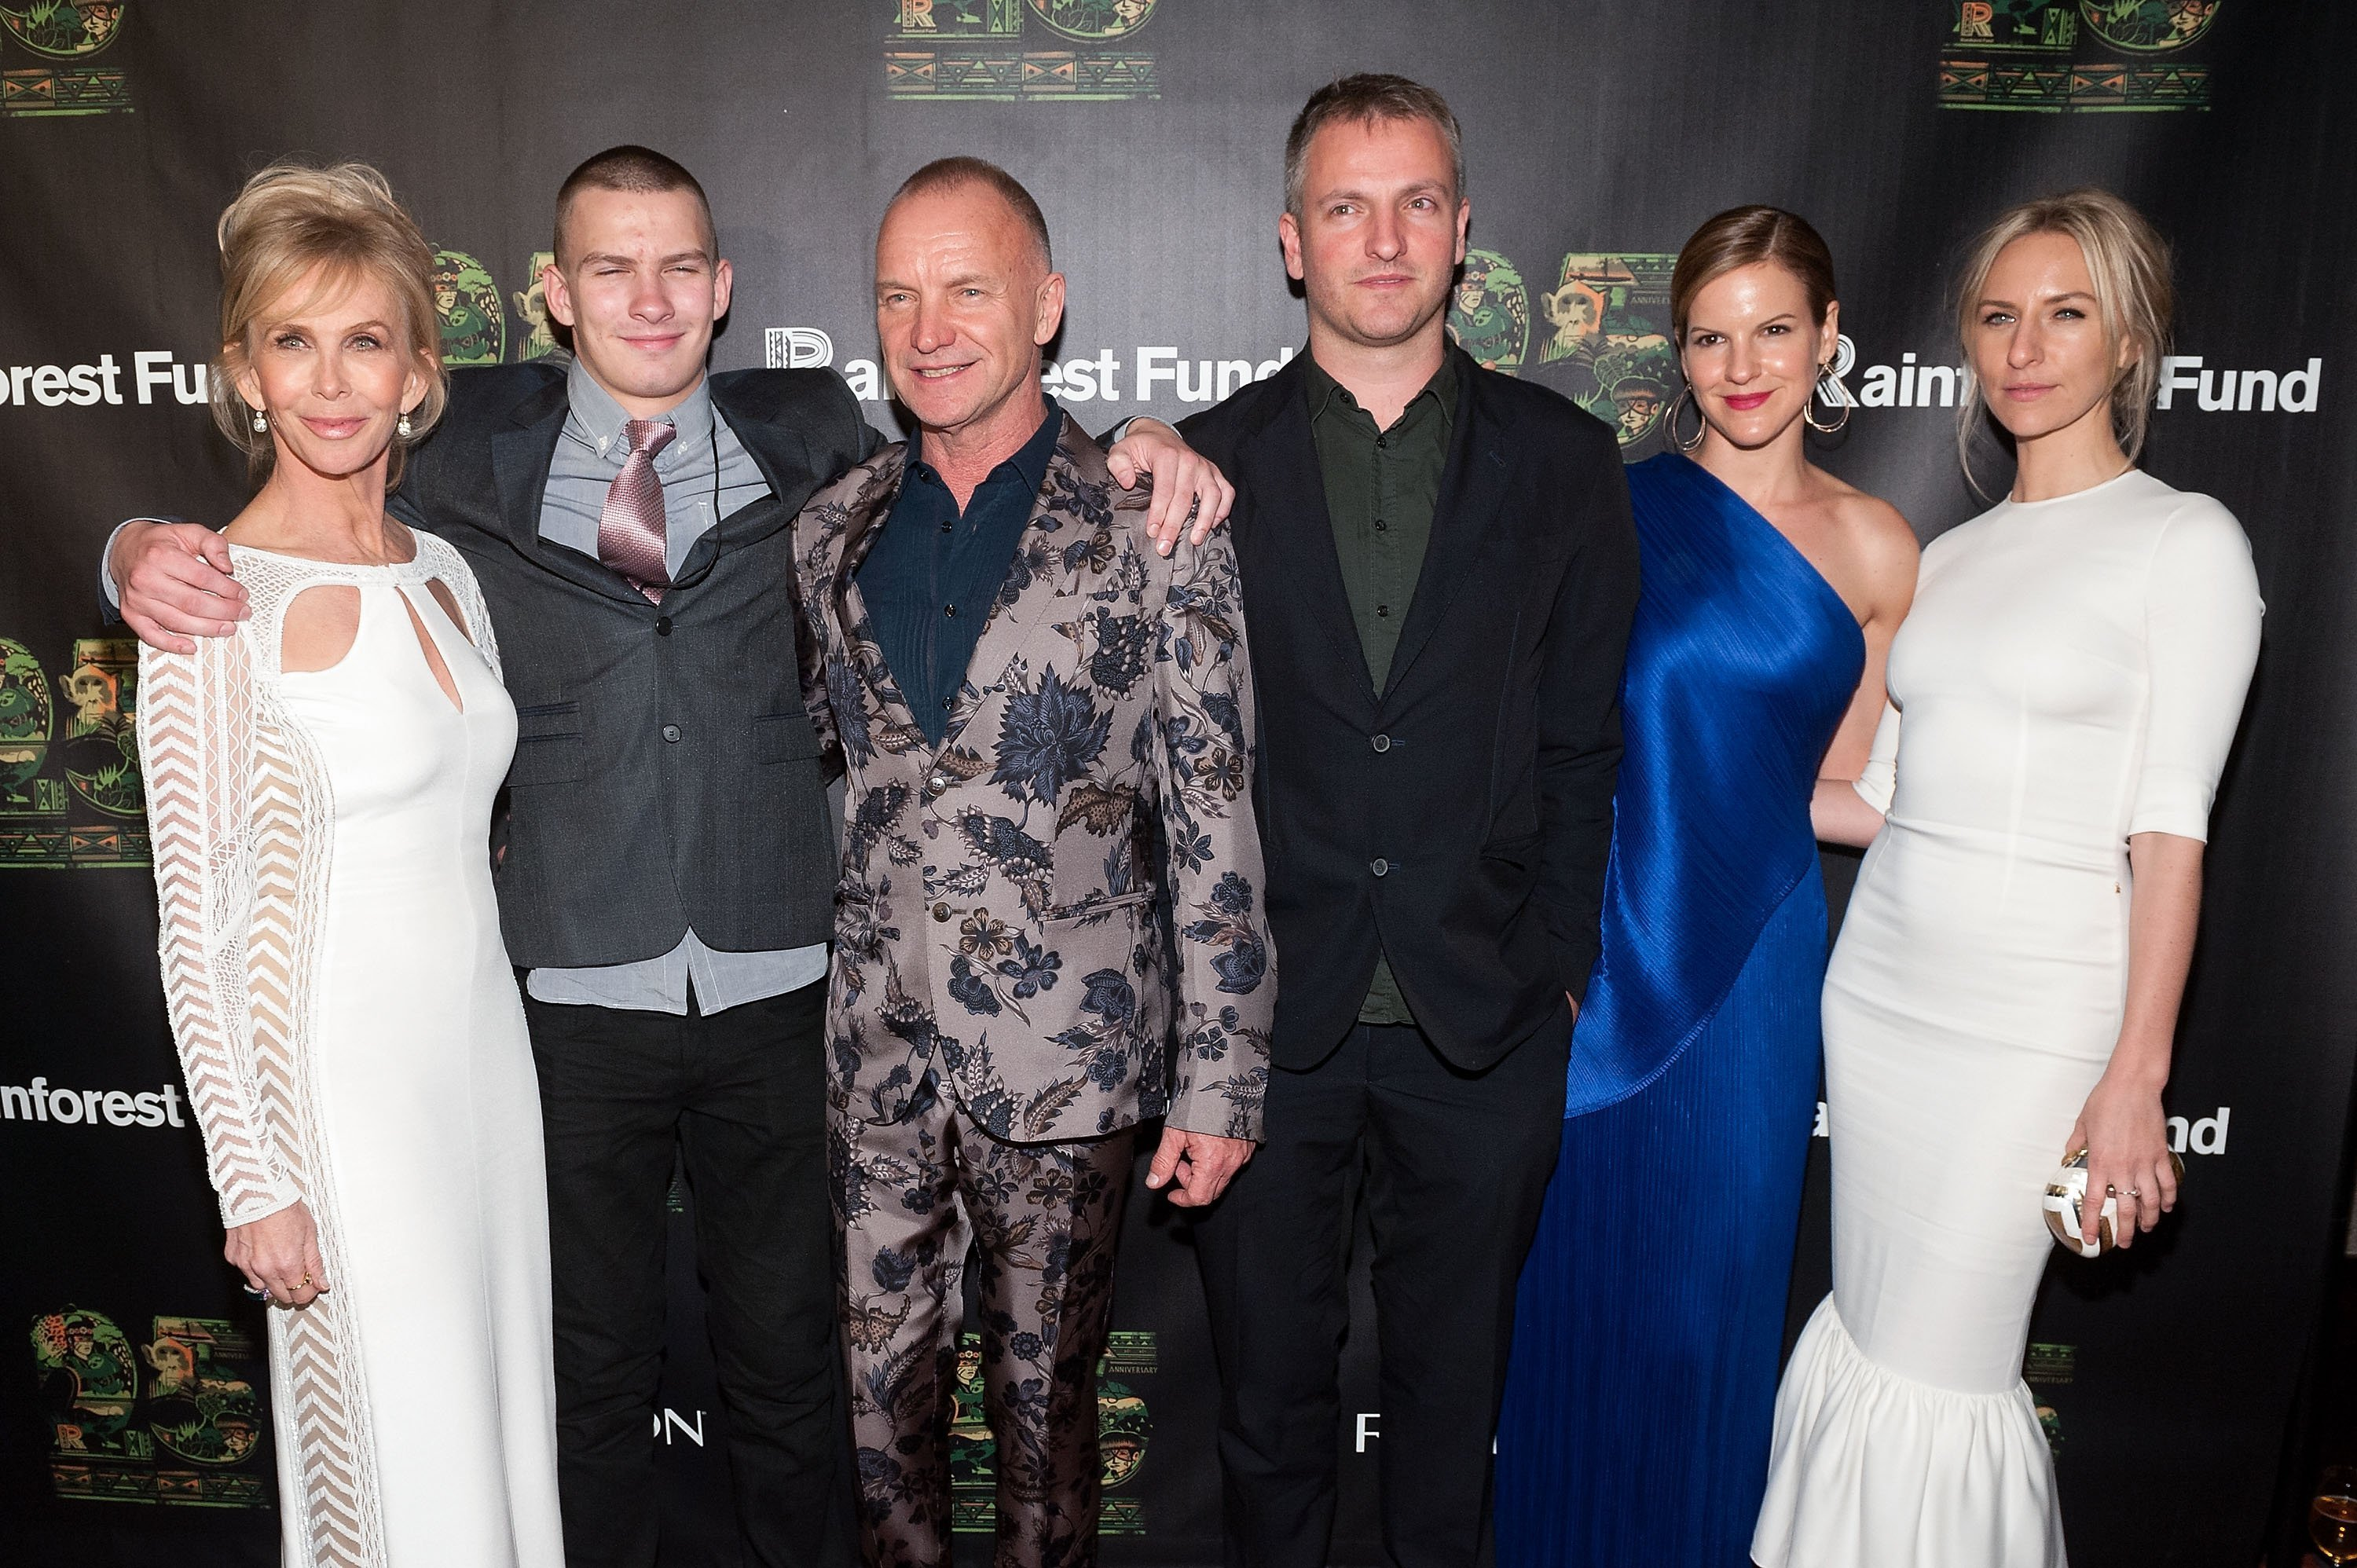 Trudie Styler, Giacomo Sumner, Sting, Joe Sumner, Fuchsia Sumner, and Mickey Sumner attend the after party for the 25th Anniversary concert for the Rainforest Fund on April 17, 2014 | Source: Getty Images